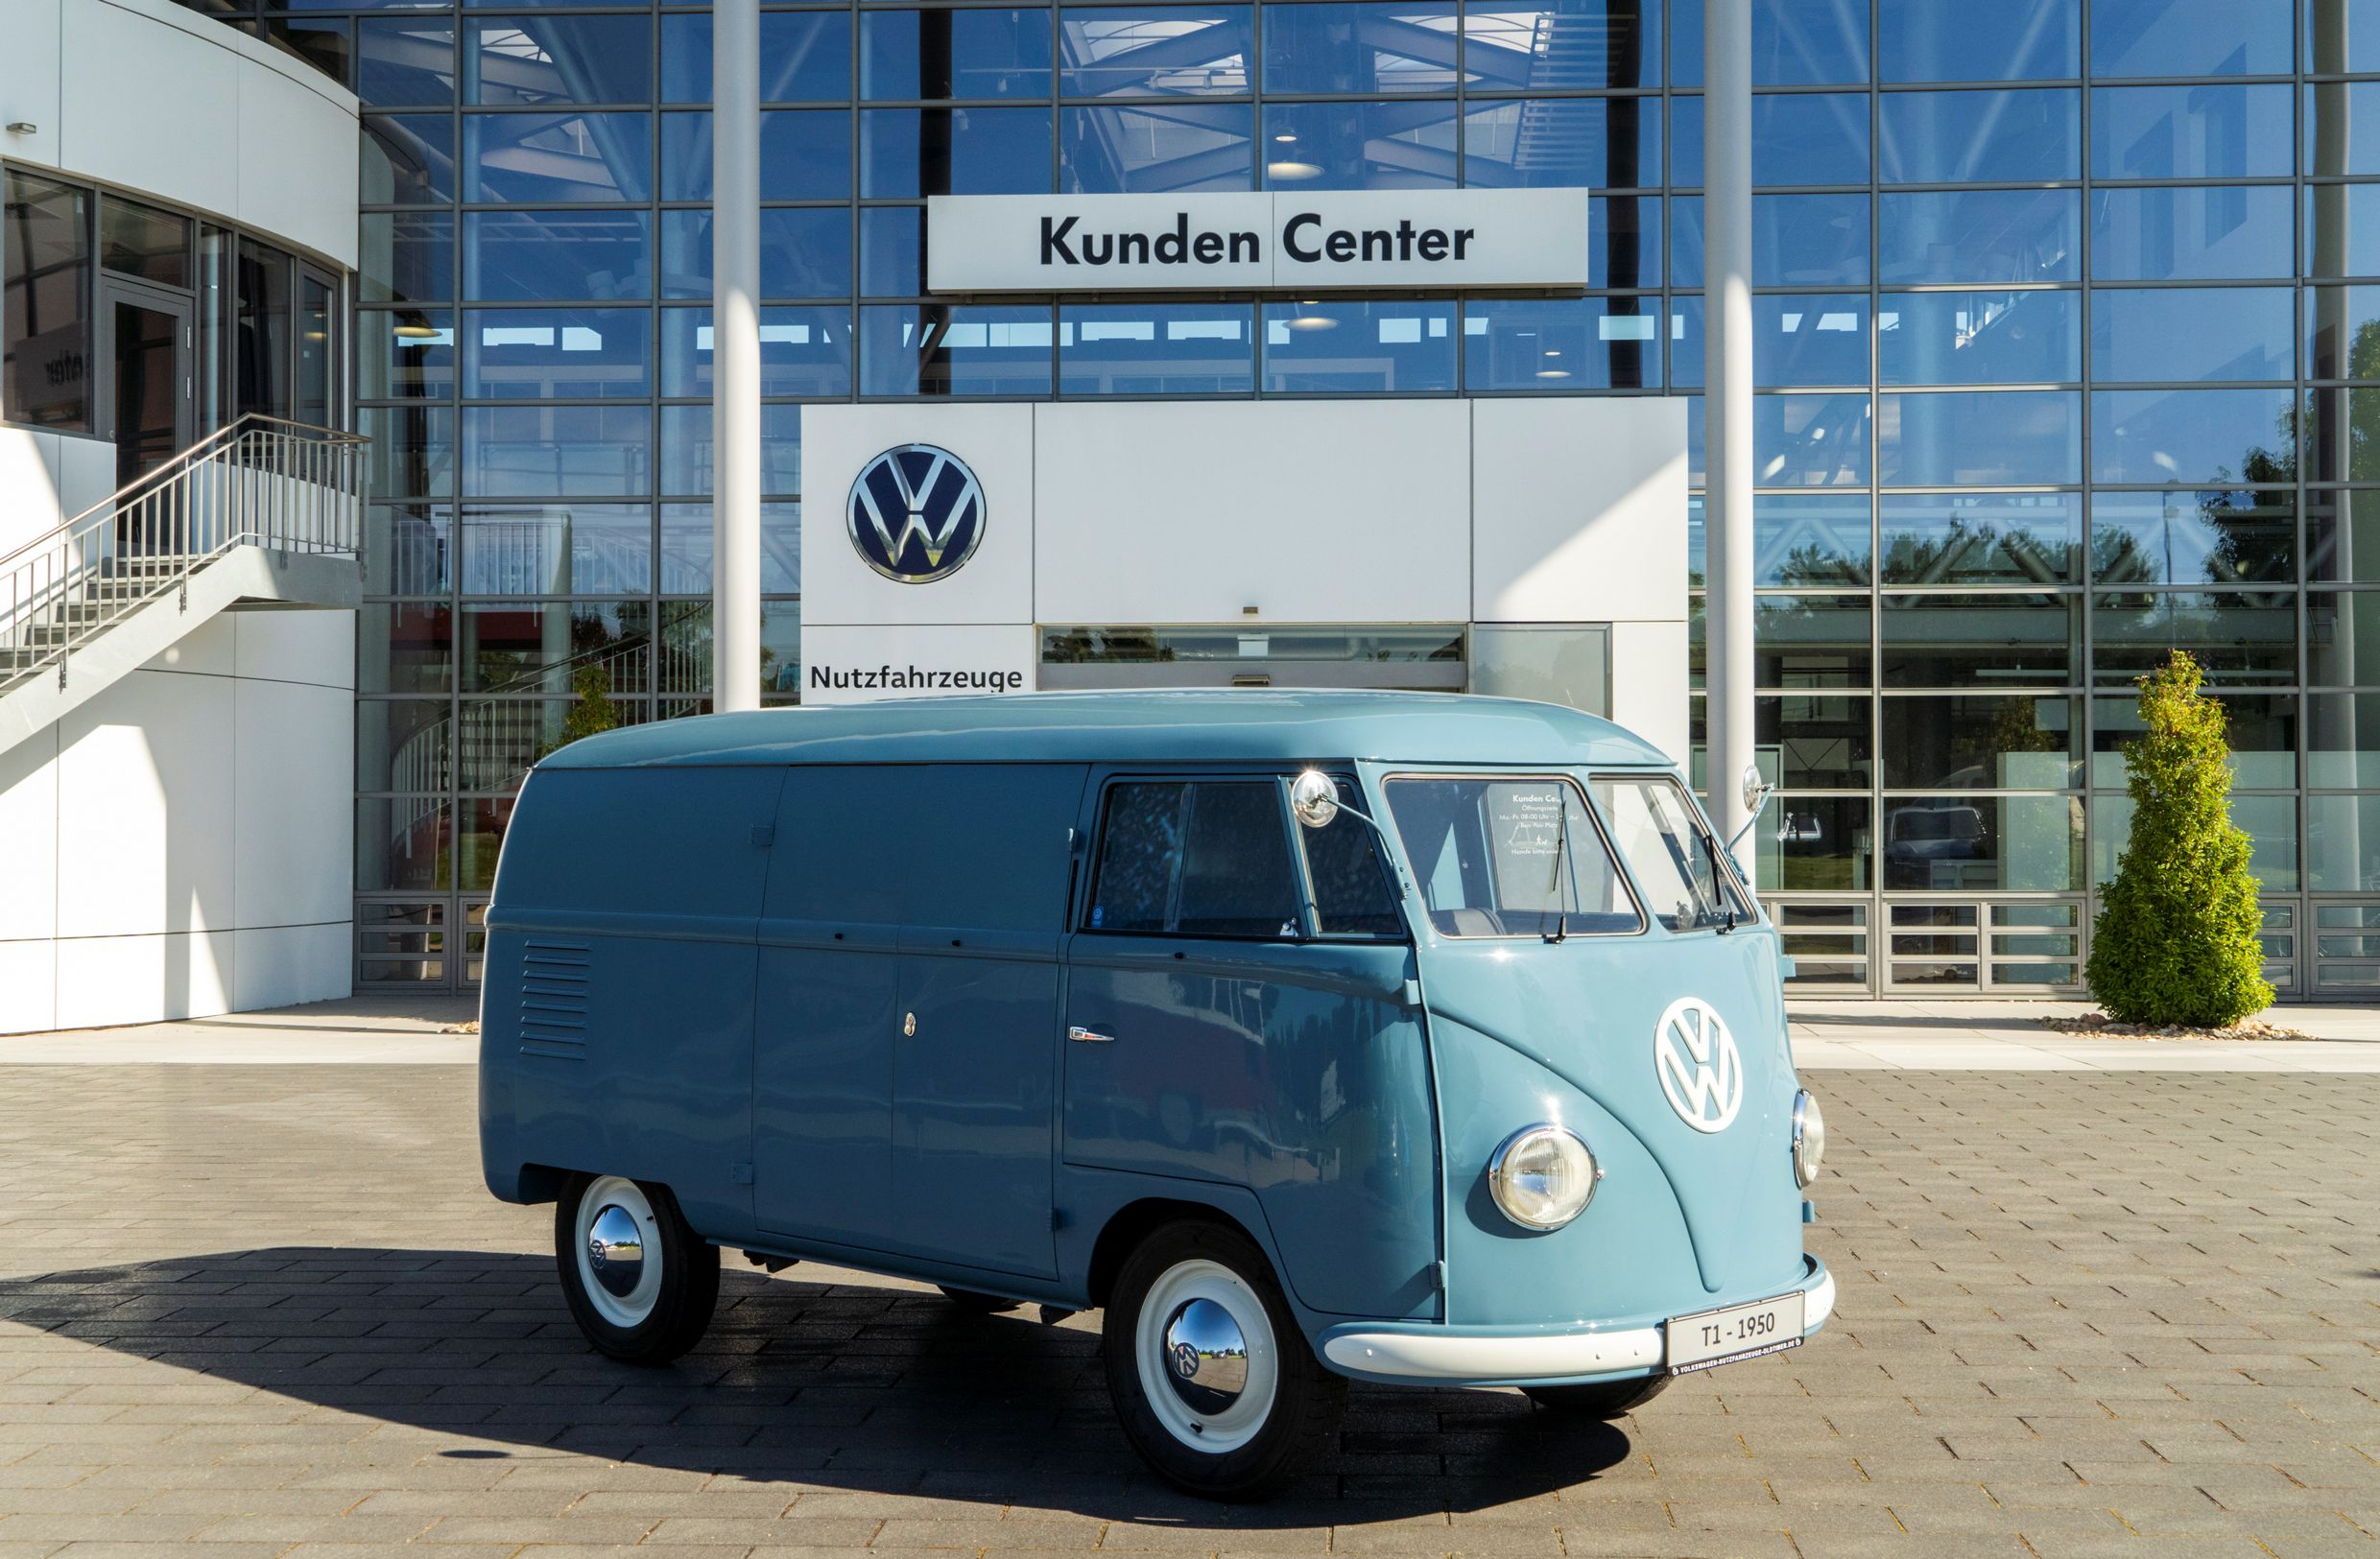 1950 VW T2 - Oldest - Full passenger side Kunden Center